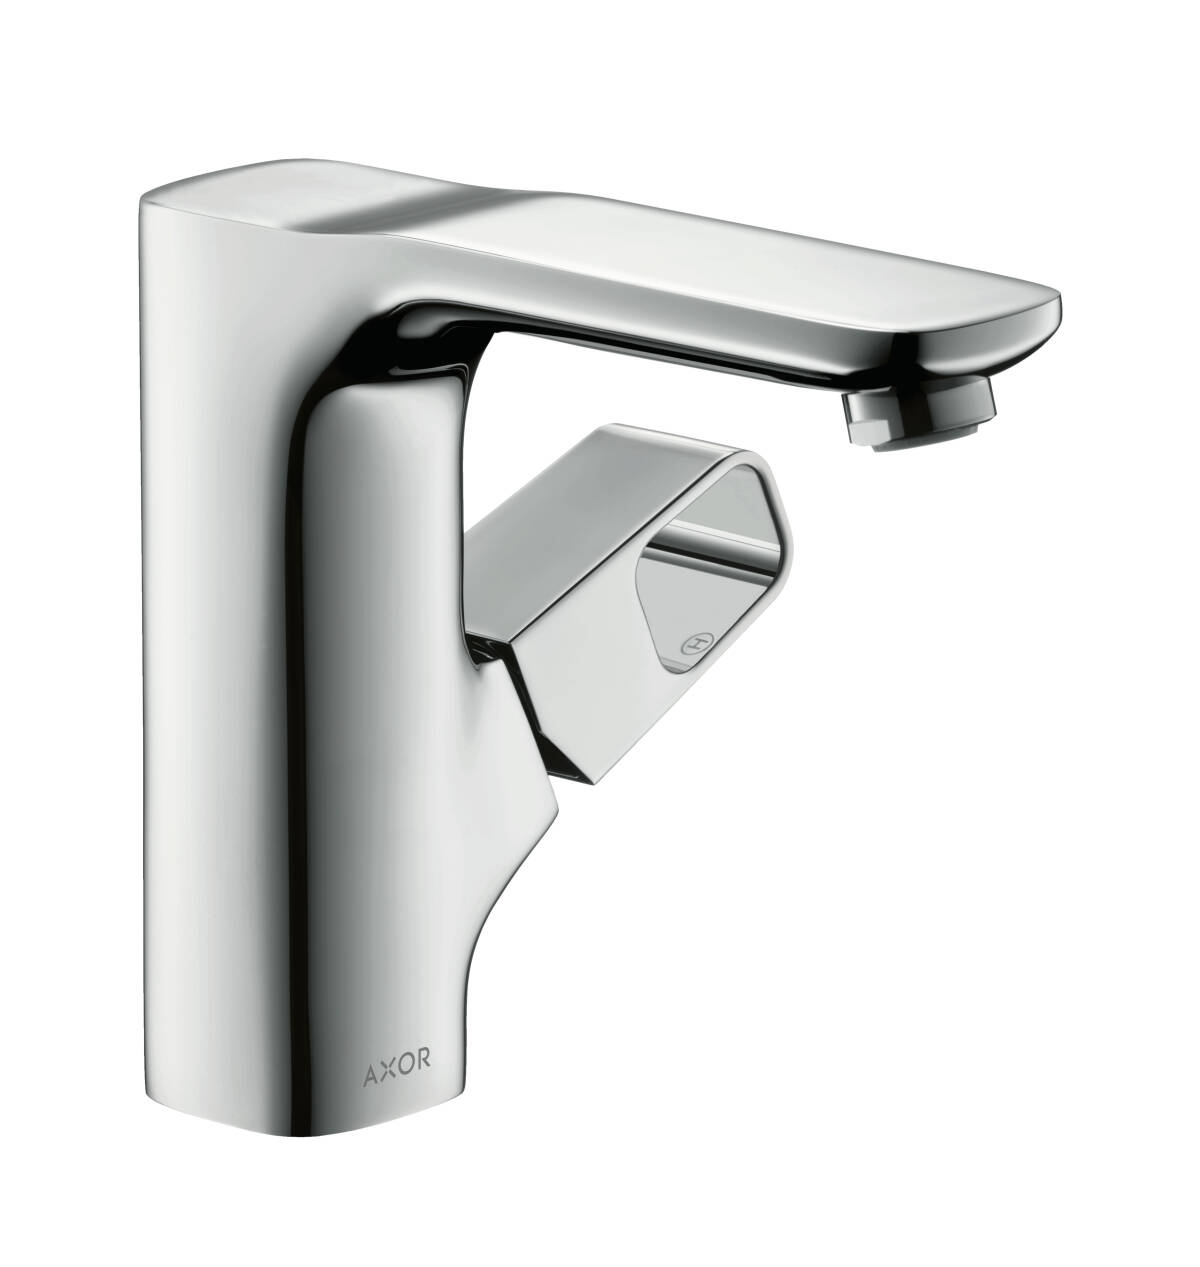 Single lever basin mixer 130 with waste set, Brushed Chrome, 11021260